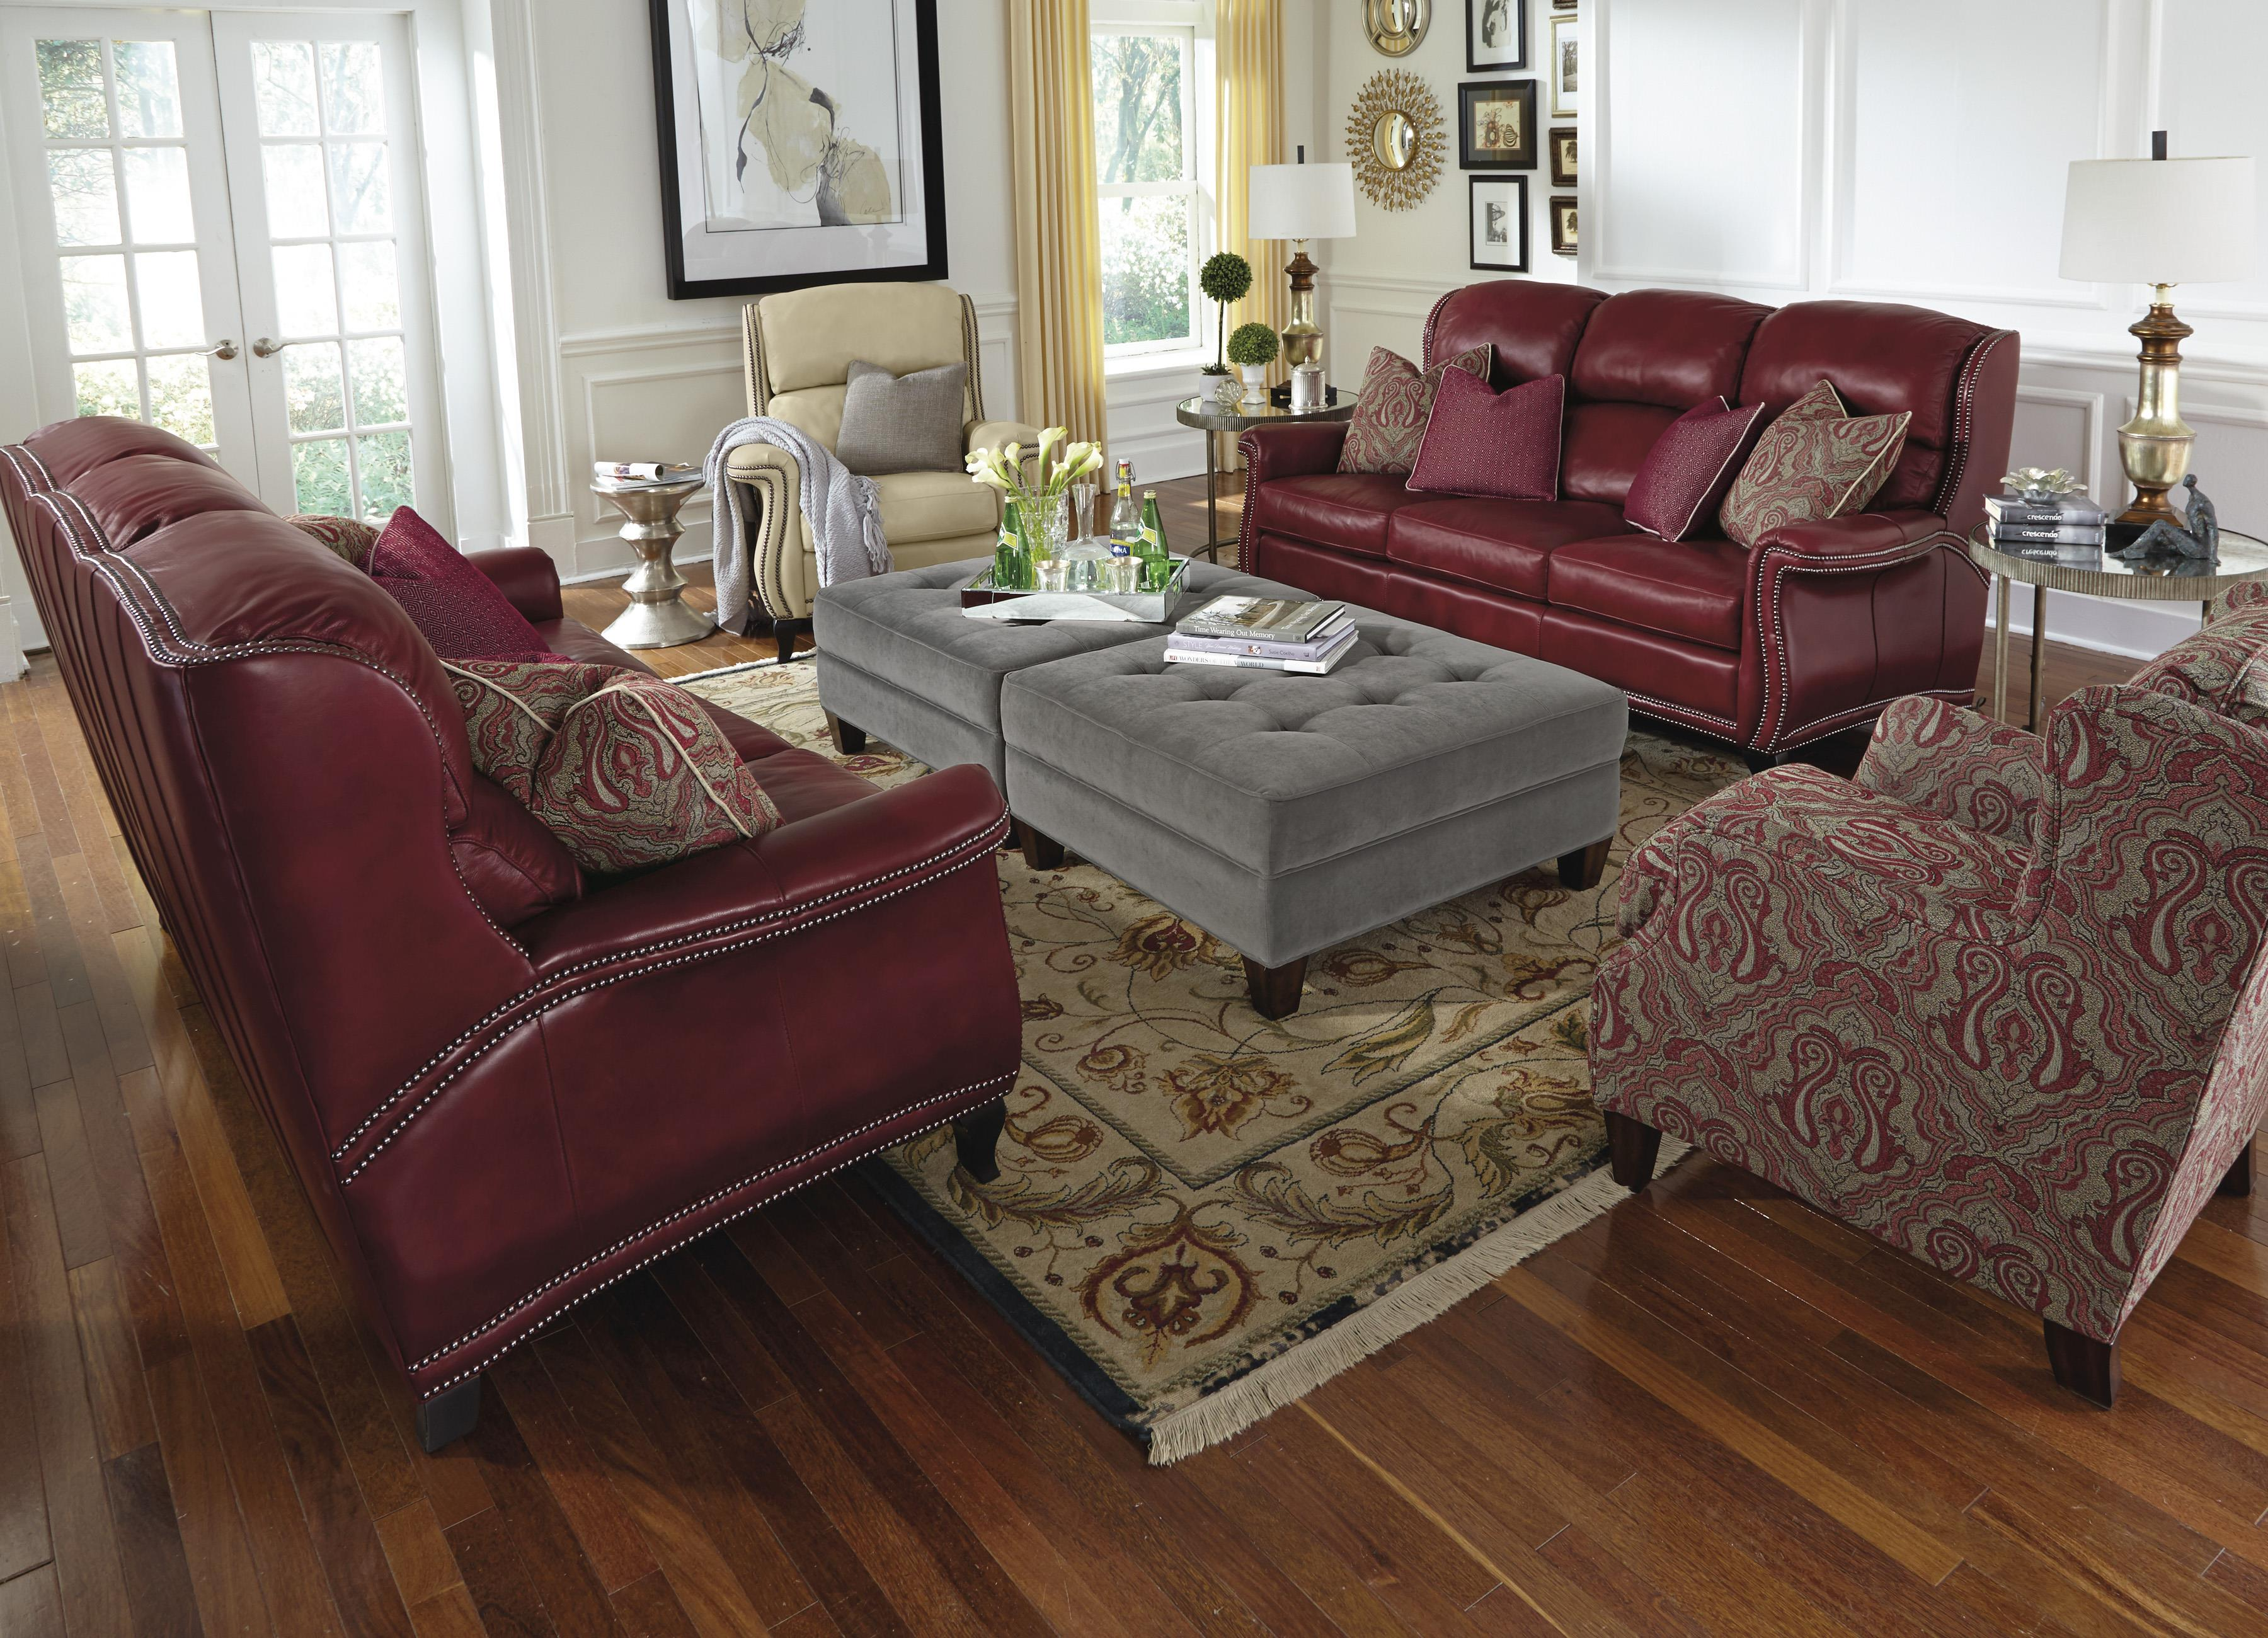 Flexsteel Latitudes-Sting Ray Stationary Living Room Group - Item Number: 1256 Living Room Group 1